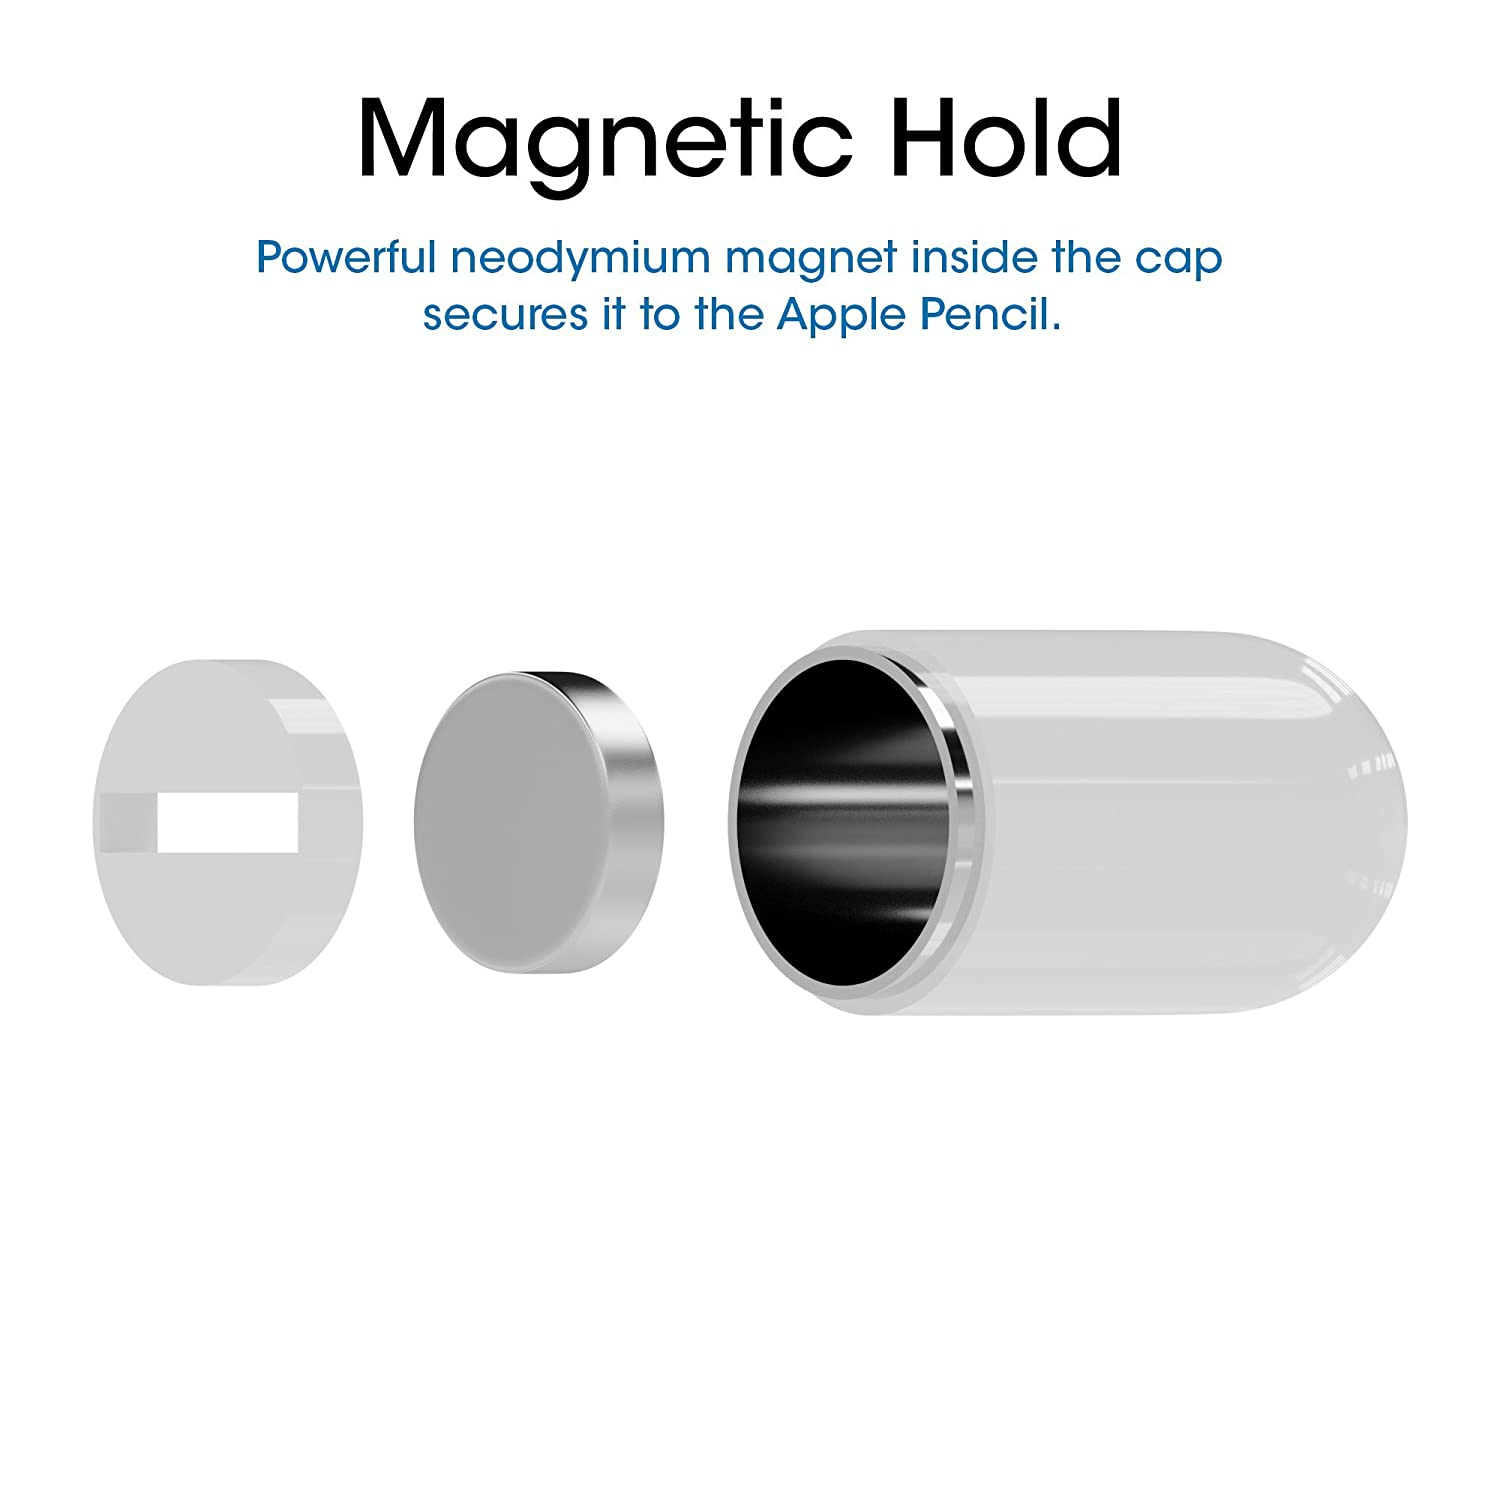 1 Pack, White TechMatte Magnetic Replacement Cap and Holder for Apple Pencil